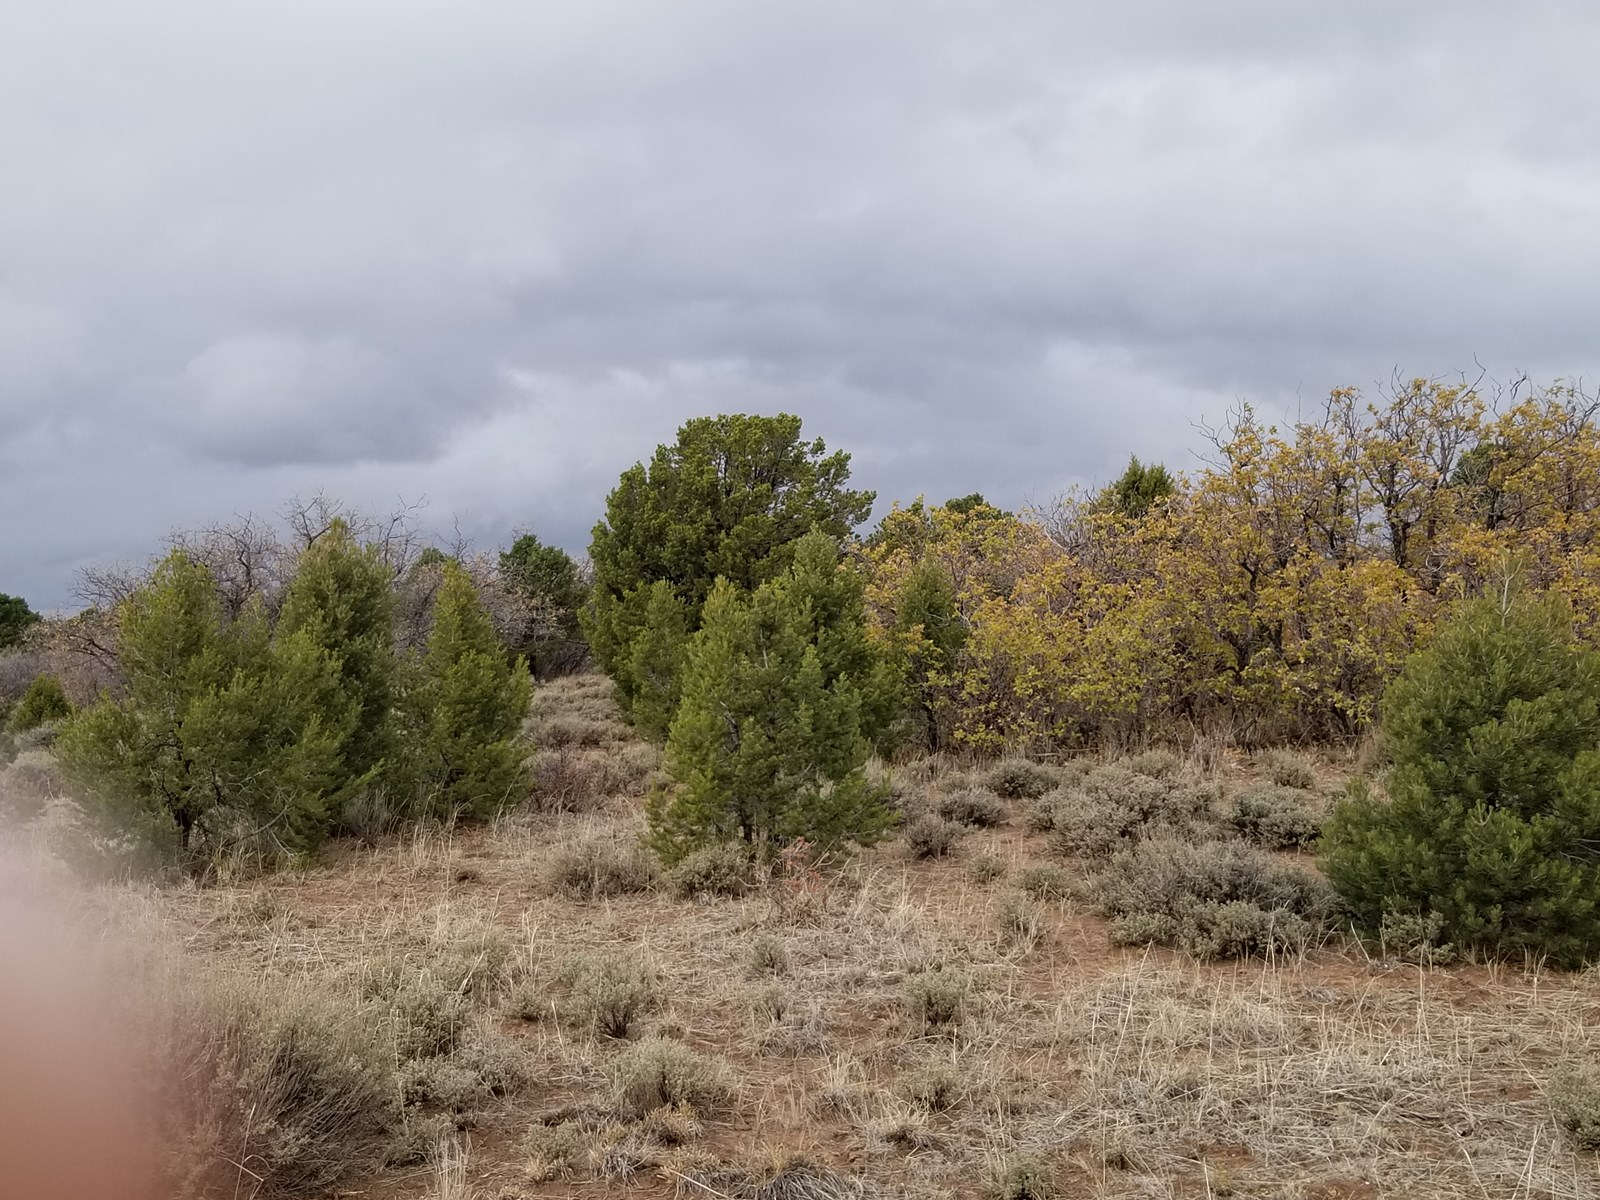 Elk Hunting Land For Sale Colorado Acres Near Telluride CO